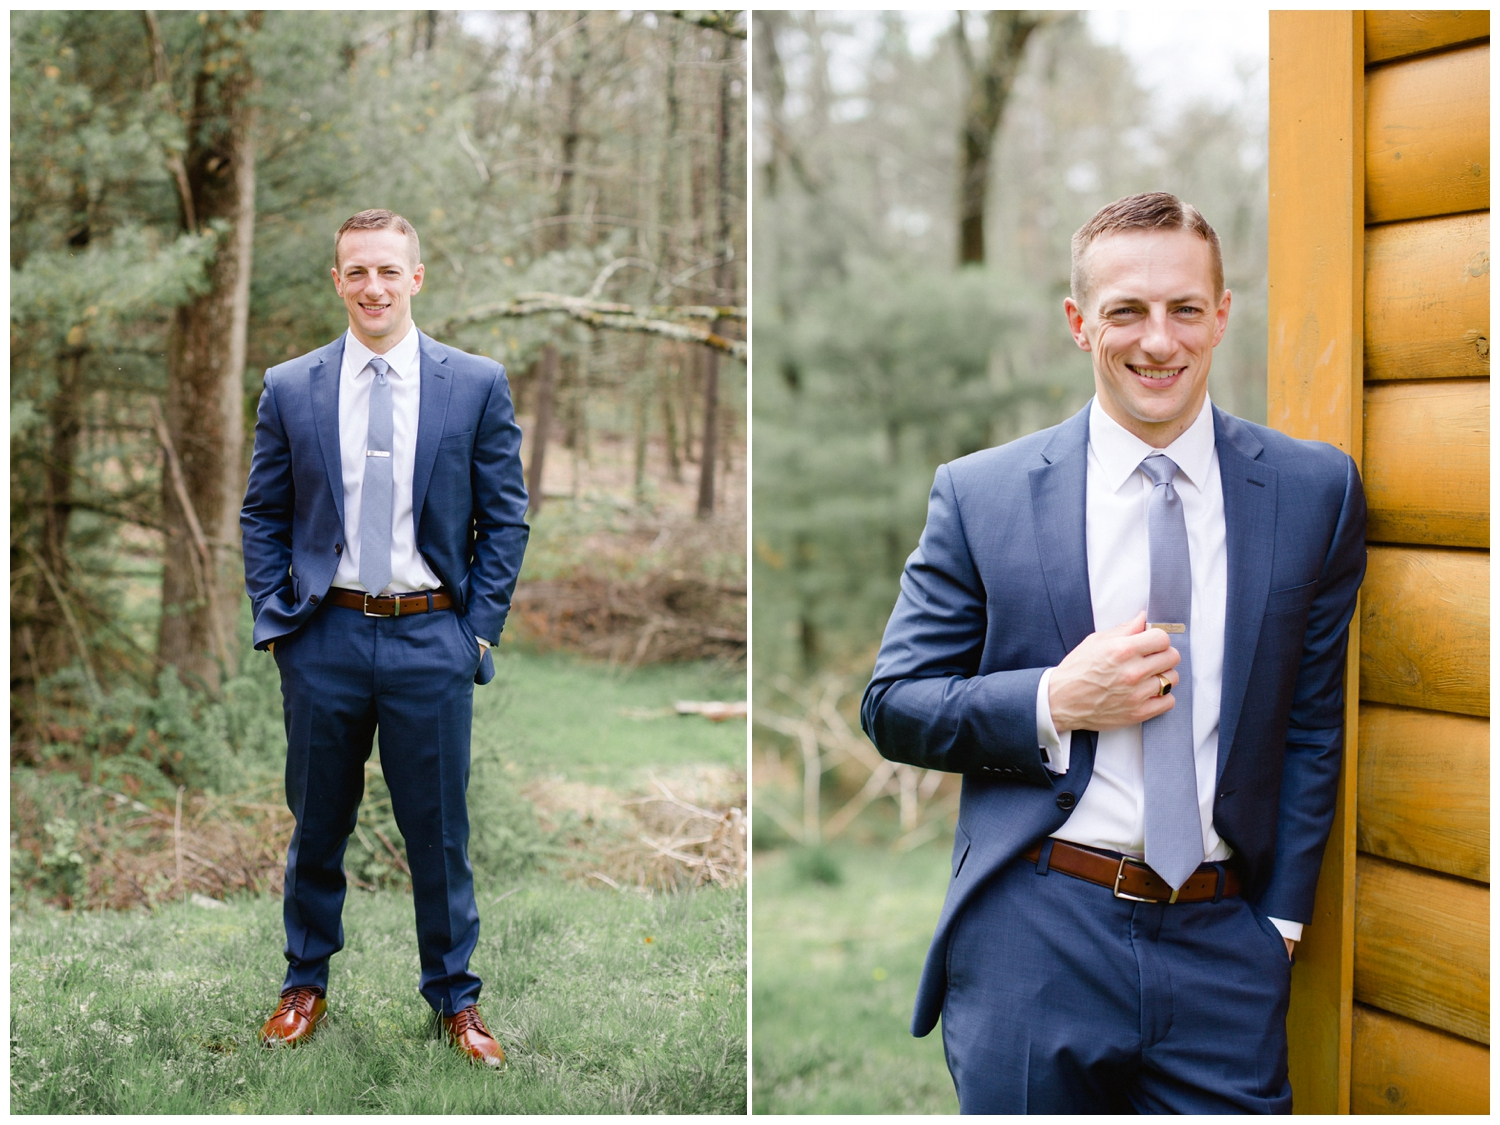 Rustic Wedding Chic Submission_Jordan DeNike_0073.jpg